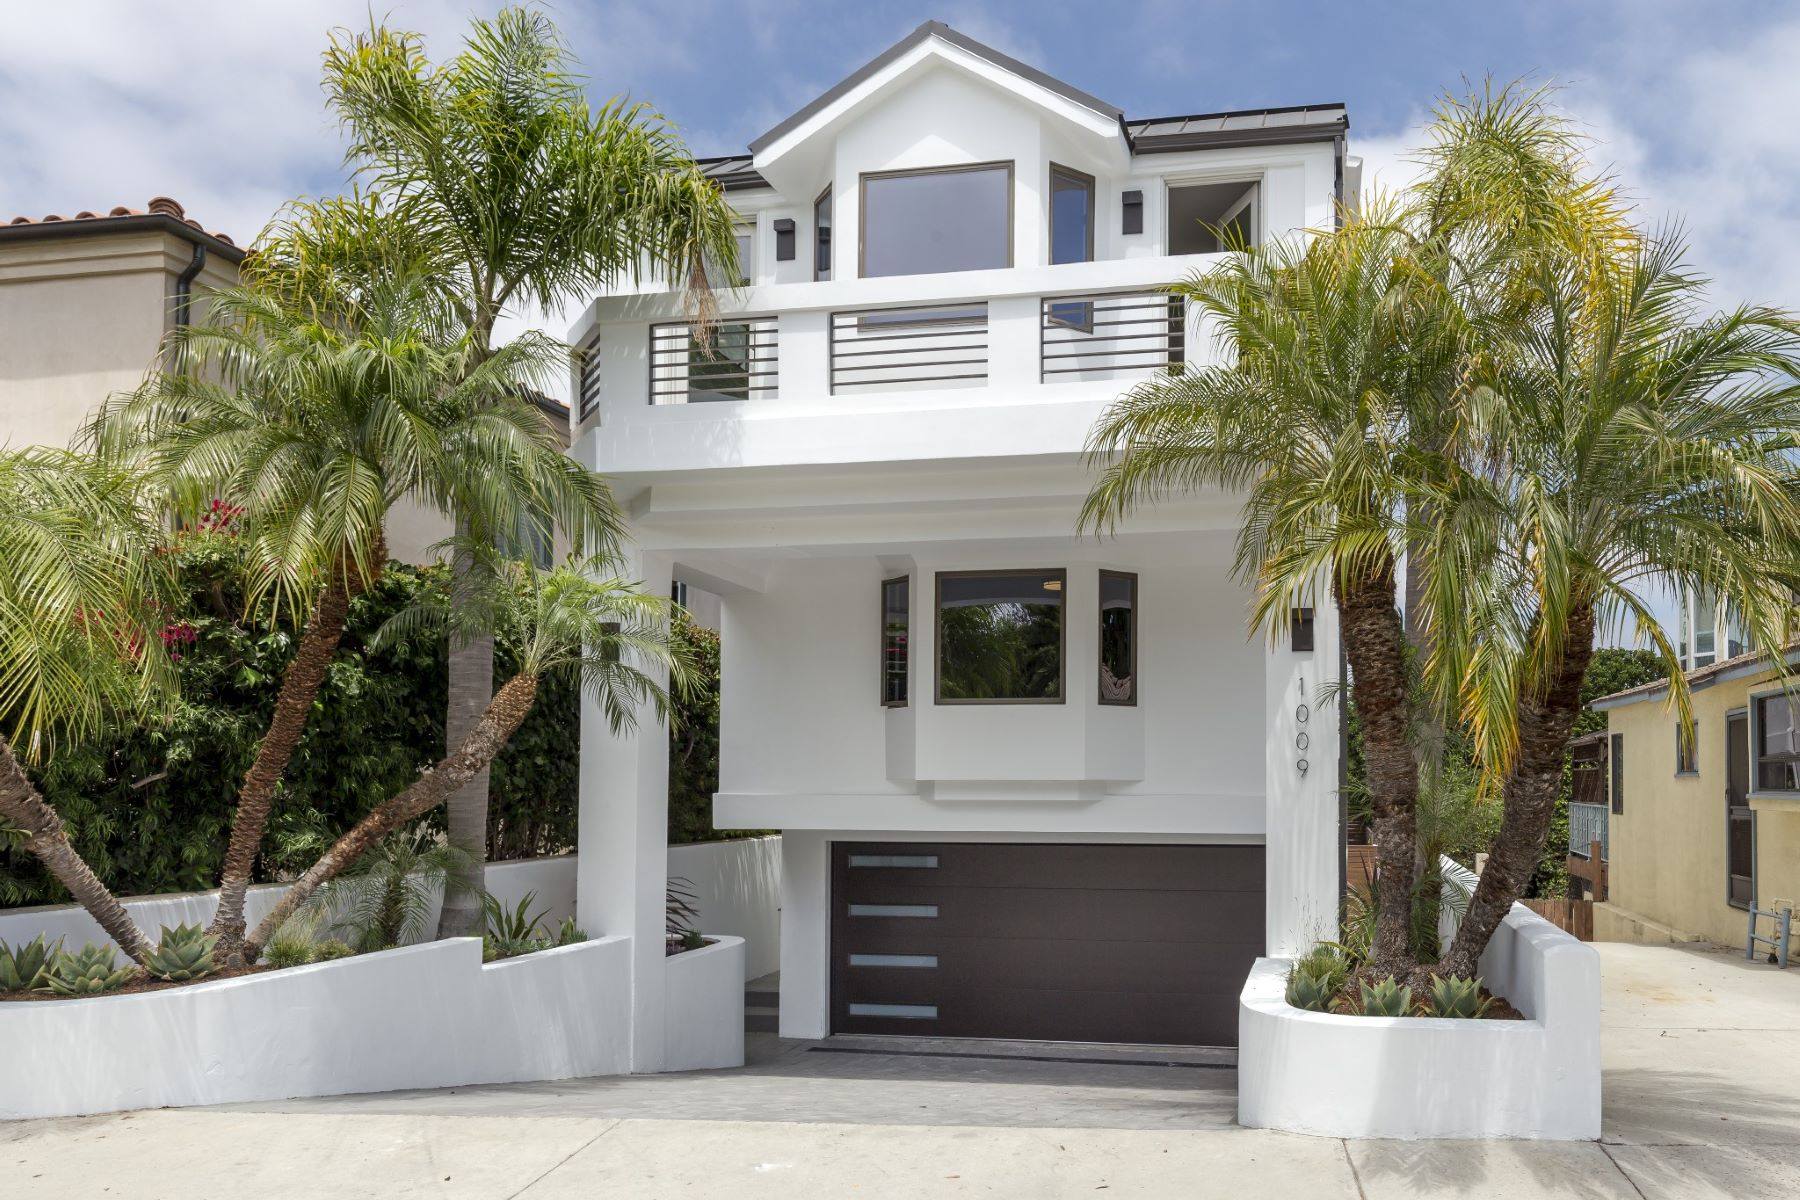 Single Family Home for Sale at 1009 4th St, Hermosa Beach 90254 1009 4th Street Hermosa Beach, California 90254 United States